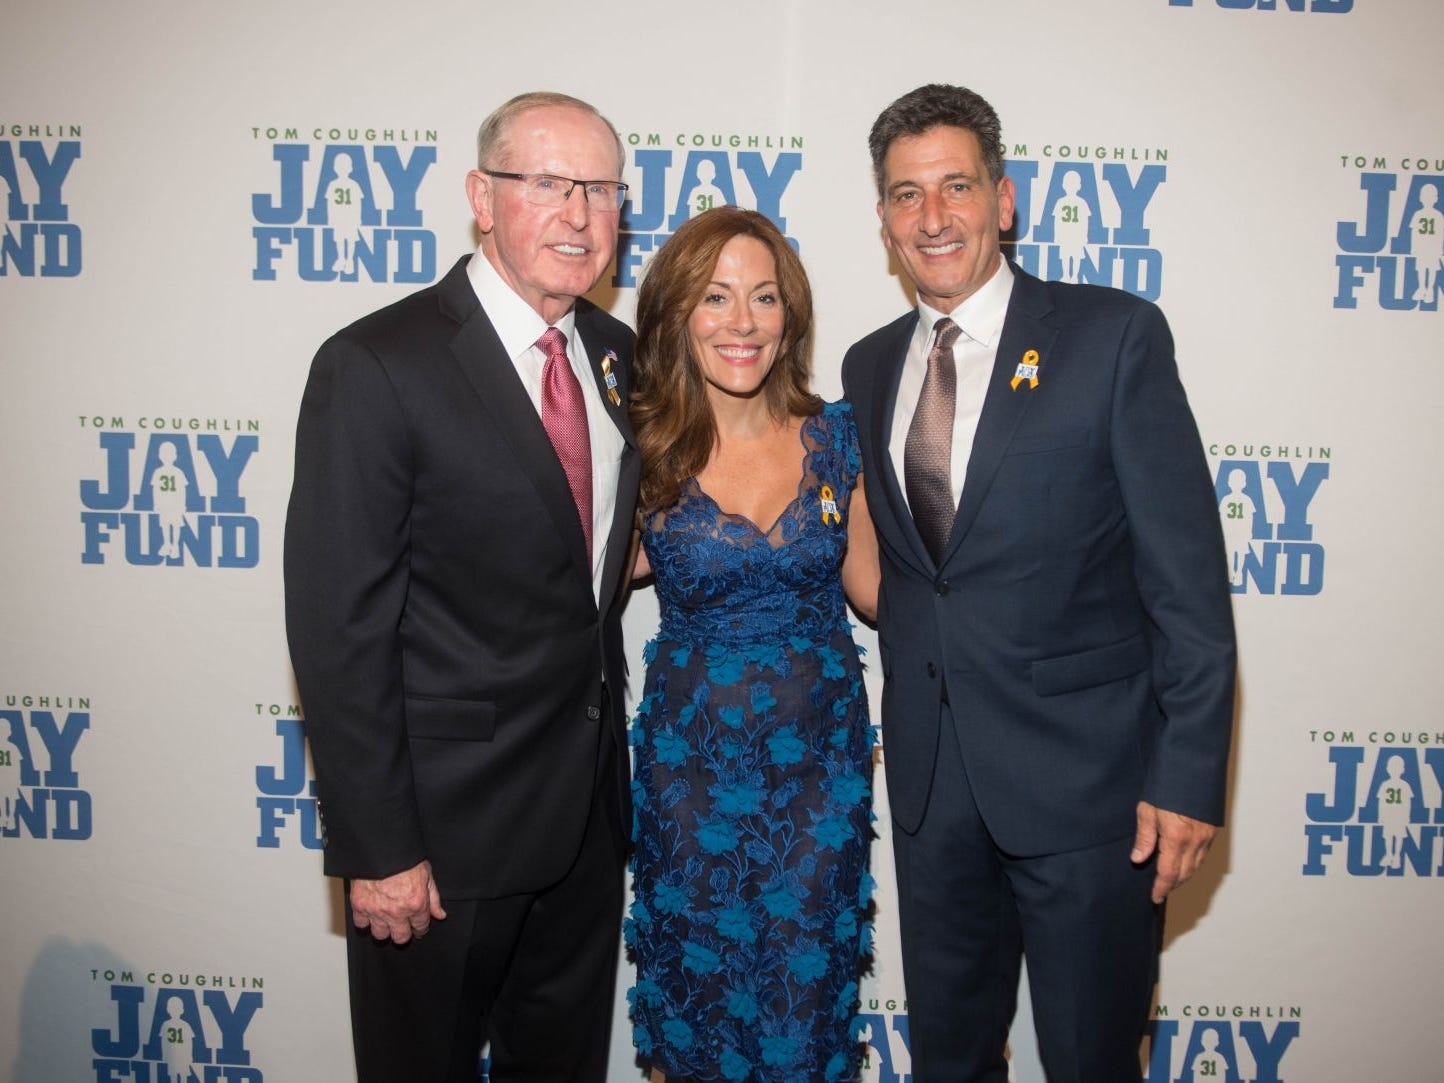 Tom Coughlin, Lisa Mauro and Gene Steratore. The 14th annual Jay Fund Champions for Children Gala was held at Cipriani 42nd Street. 09/21/2018